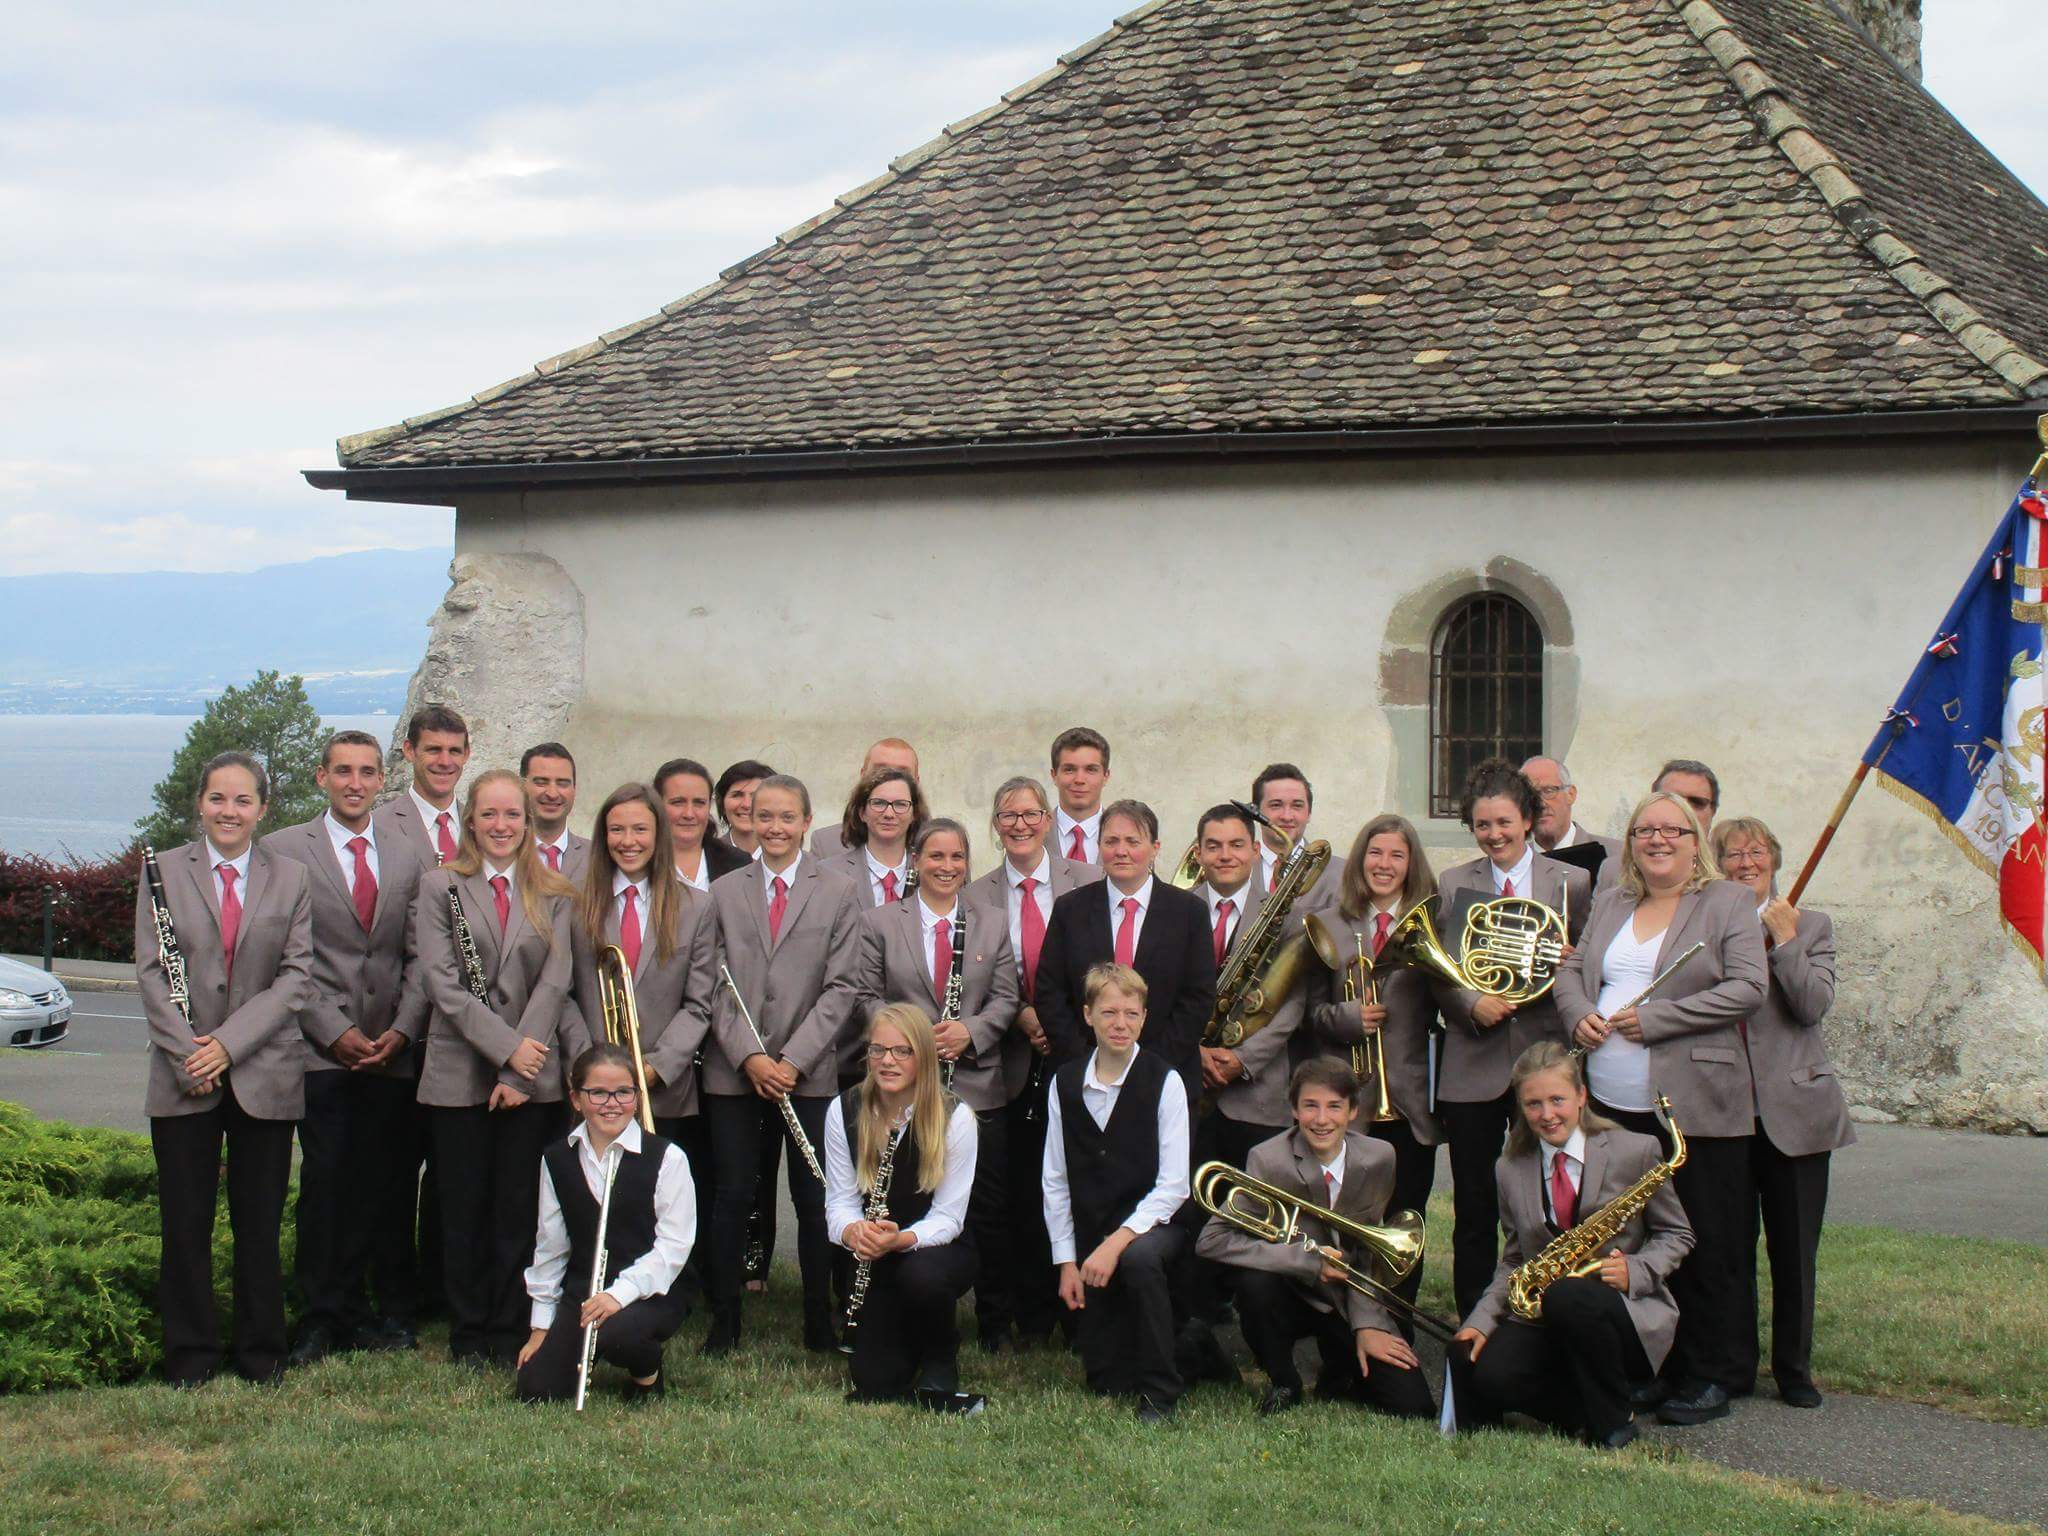 Christmas Concert in the Abbey of Abondance